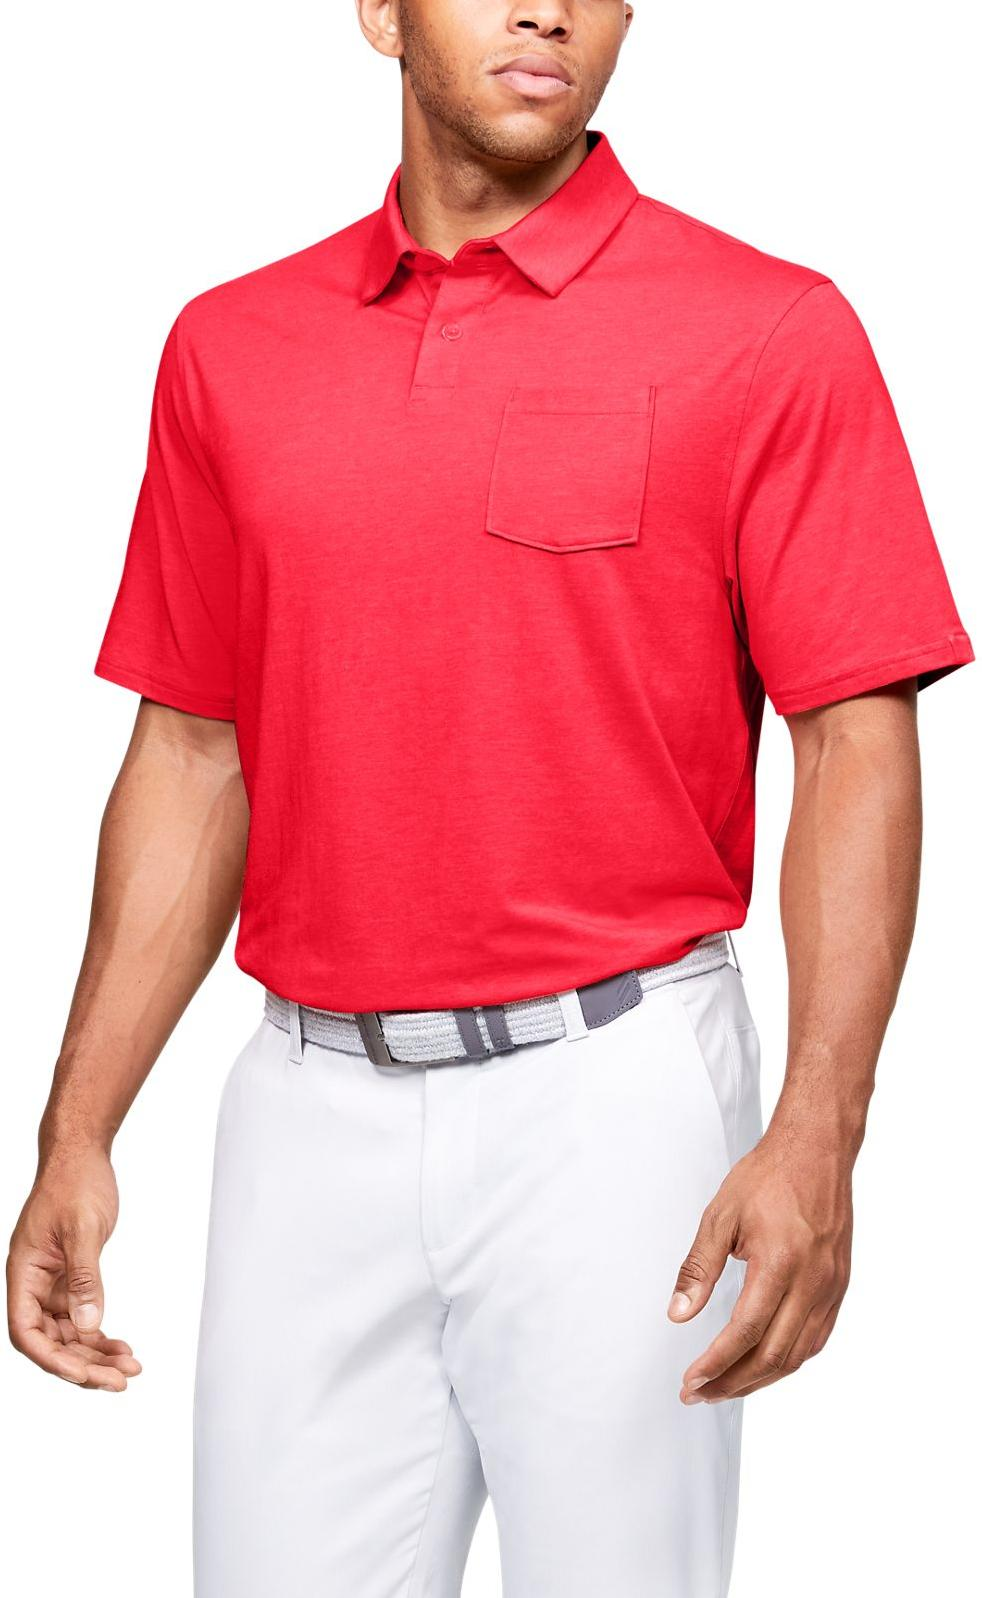 Under Armour Charged Cotton Scramble Polo Rövid ujjú póló